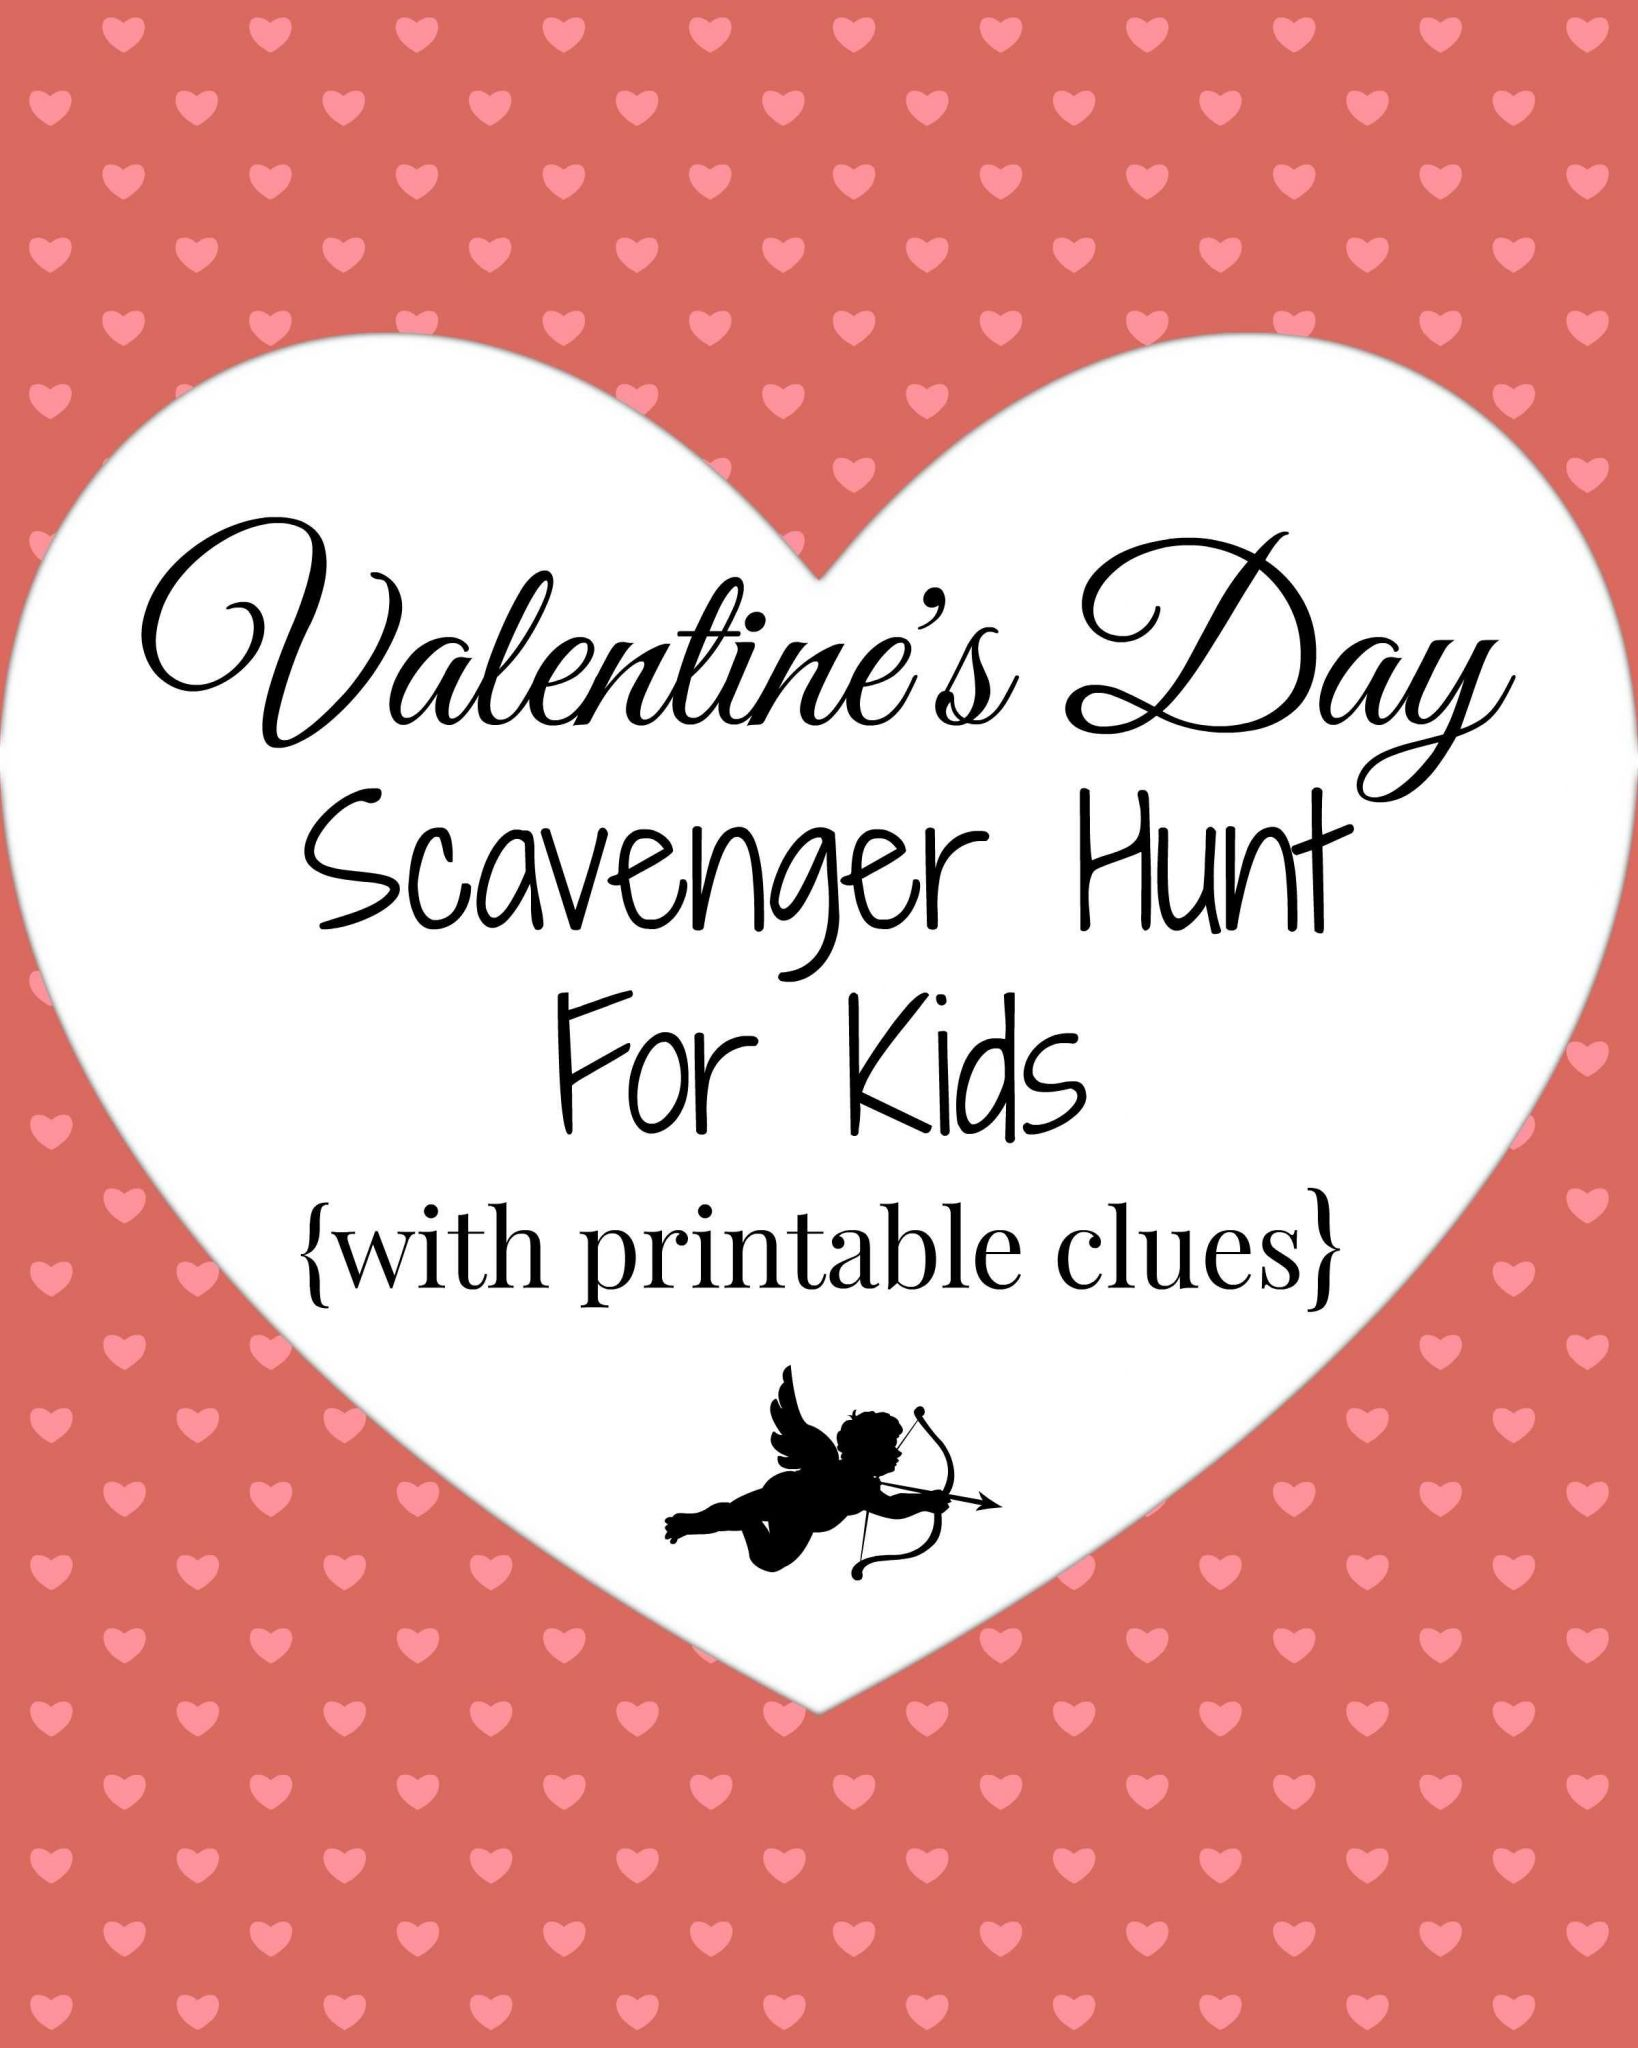 Internet Scavenger Hunt Worksheet as Well as Valentine S Day Scavenger Hunt for Kids with Printable Clues